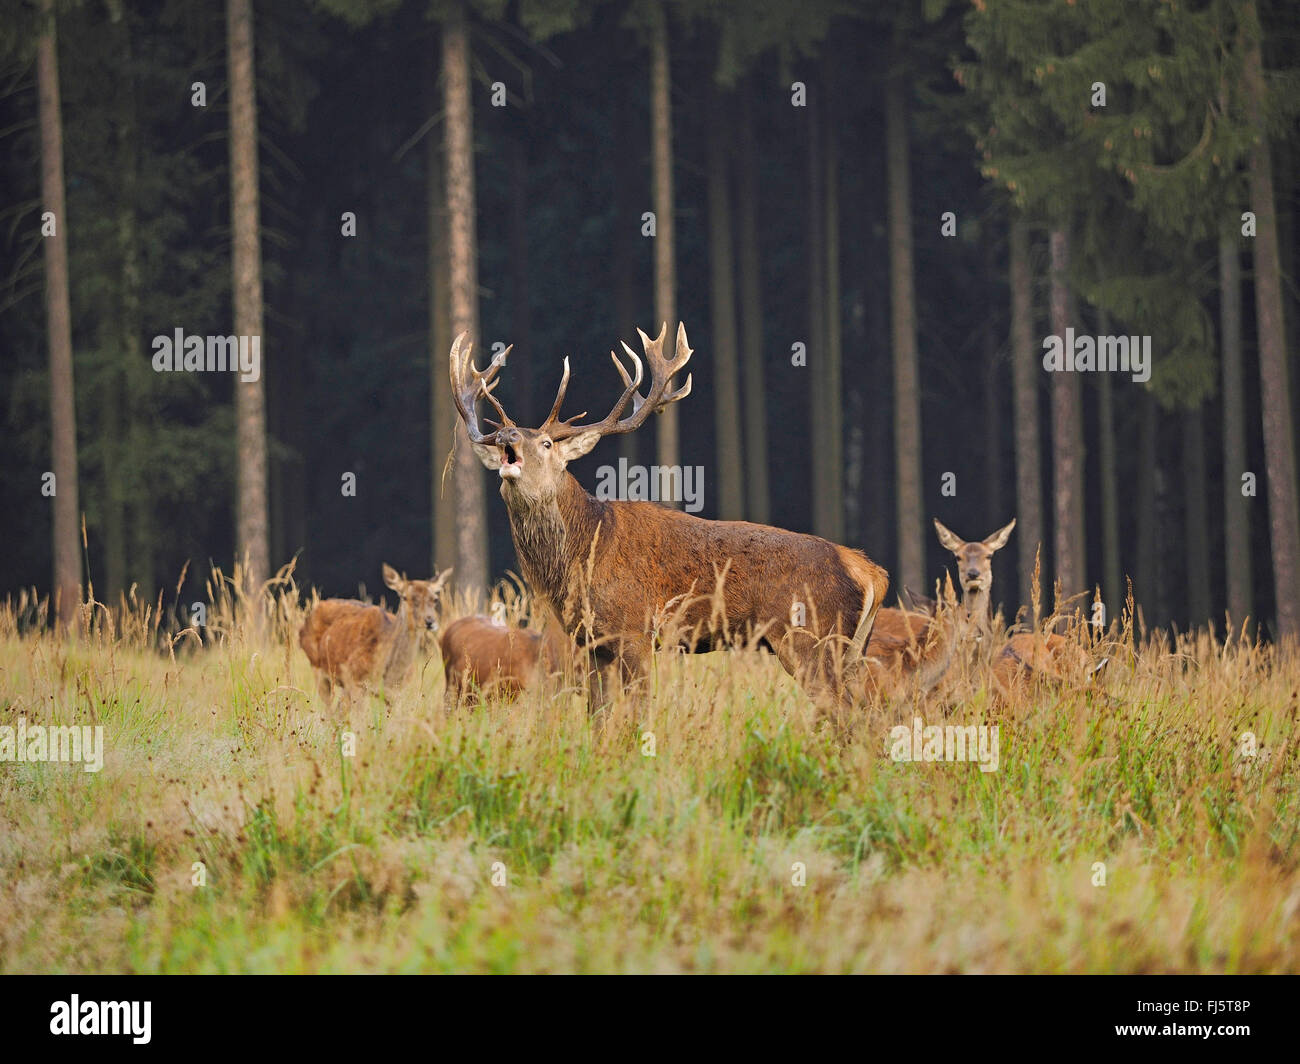 red deer (Cervus elaphus), roaring alpha male with hinds in rutting season, Germany, Saxony - Stock Image